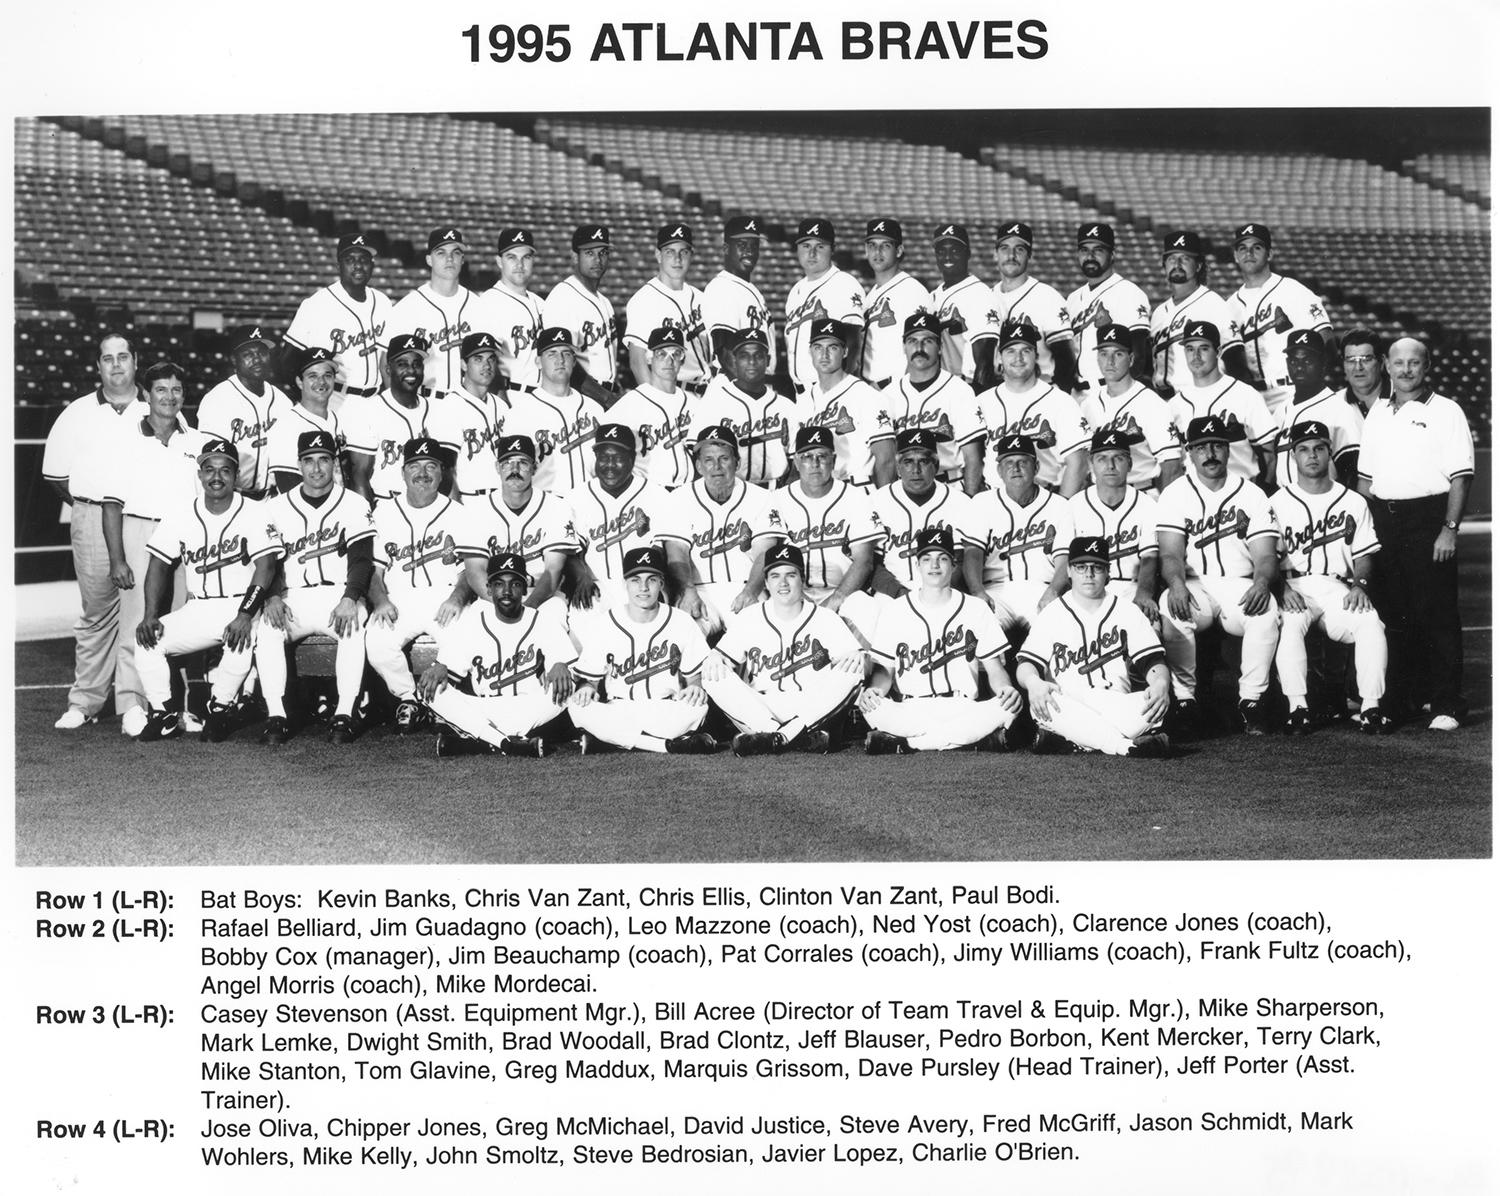 Chipper Jones won a World Series ring in his first full season with the Atlanta Braves, in 1995. He's pictured above on the top row, second from the left. (National Baseball Hall of Fame and Museum)